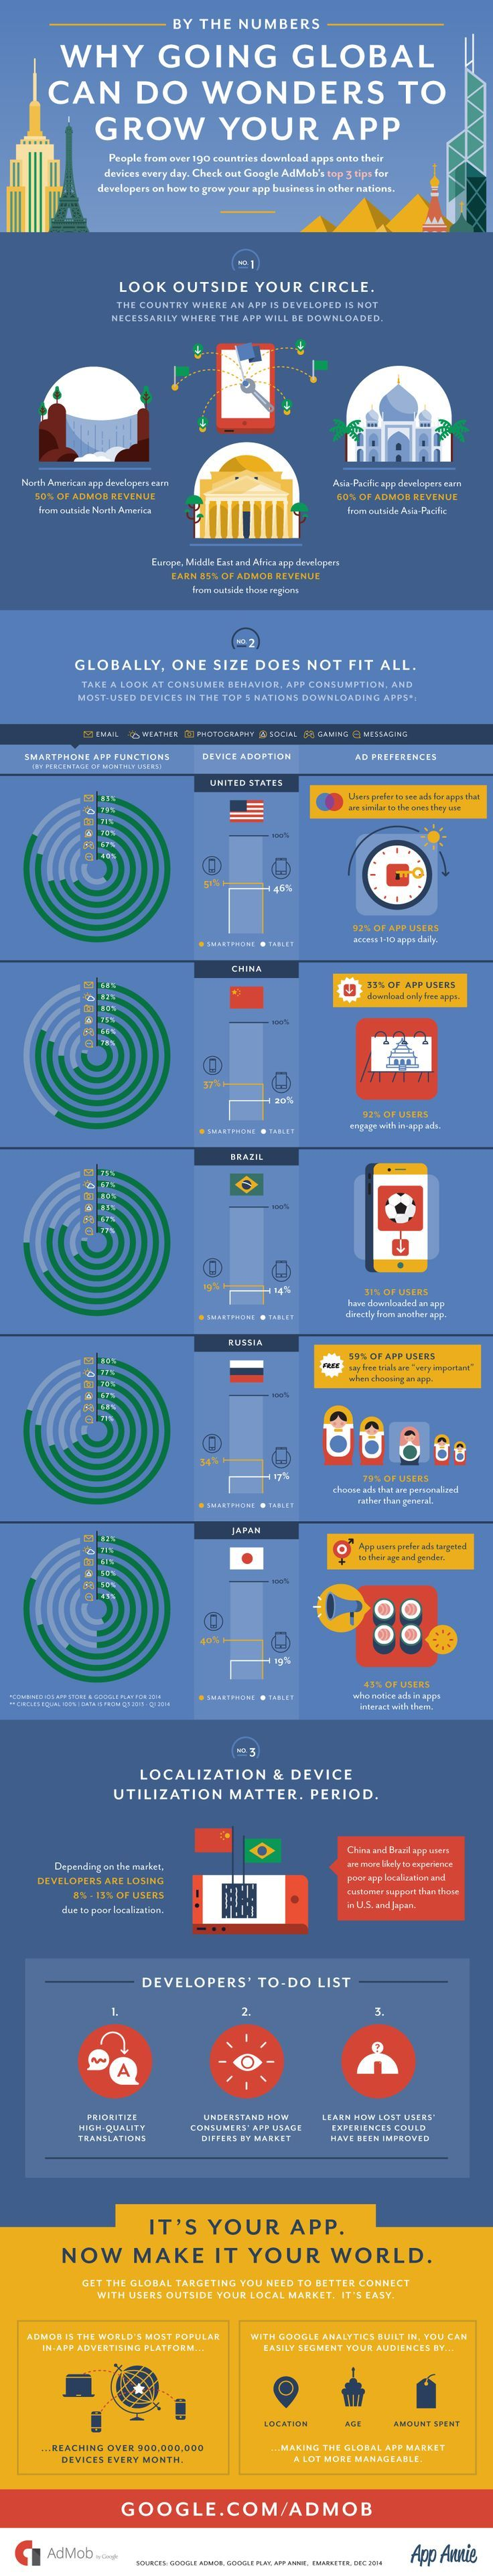 Why Going Global Can Do Wonders To Grow Your App #infographic #Marketing #Apps NextStep Hub | Technology + Design